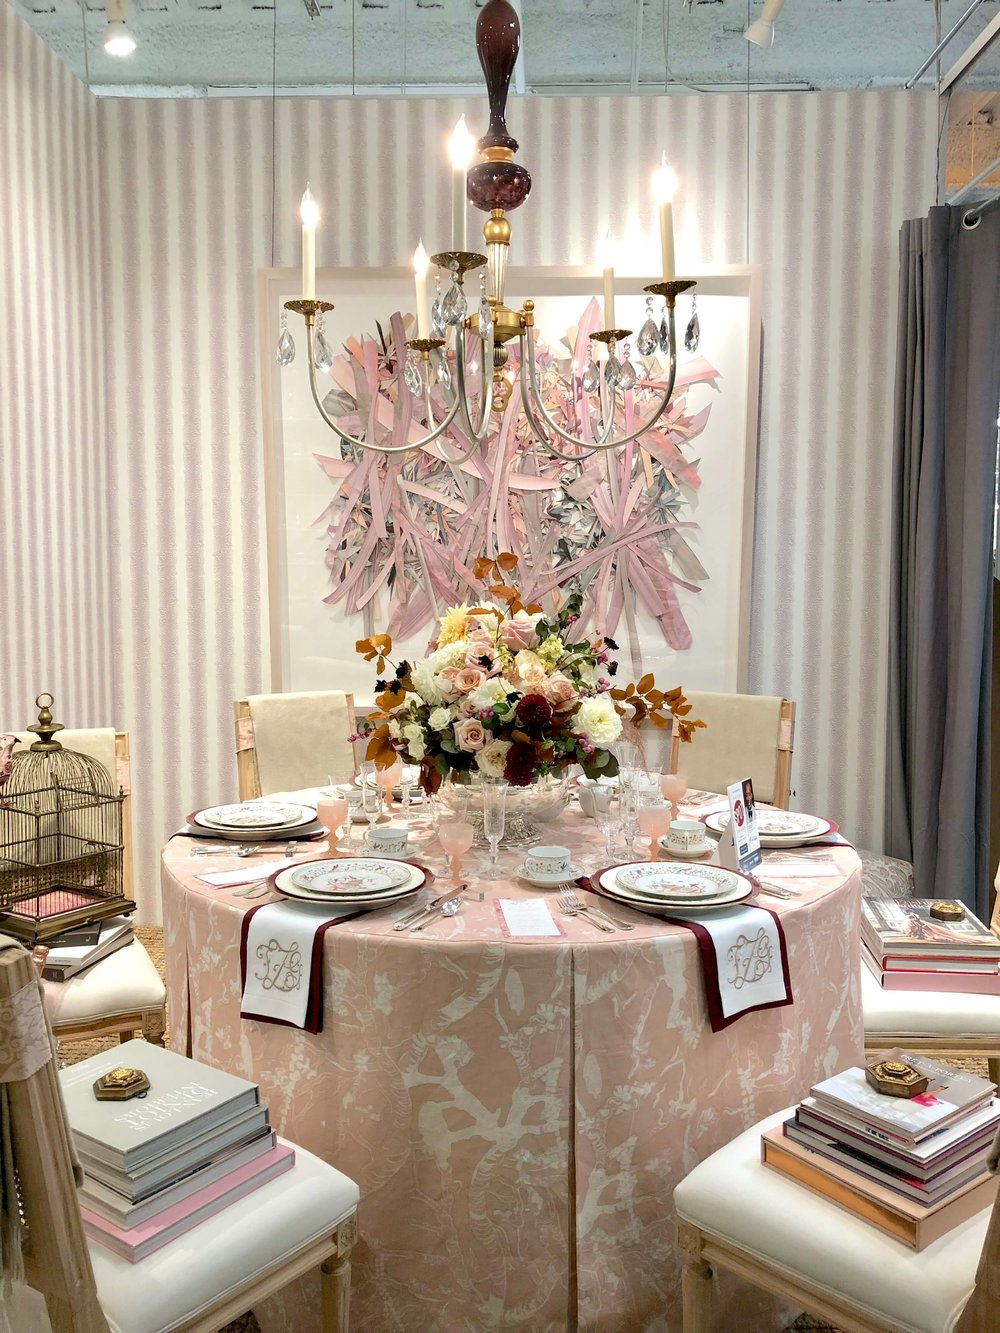 Pink dining room designed by Traci Zeller for Replacements, Ltd. Showroom #hpmkt #pinkroom #diningroomideas